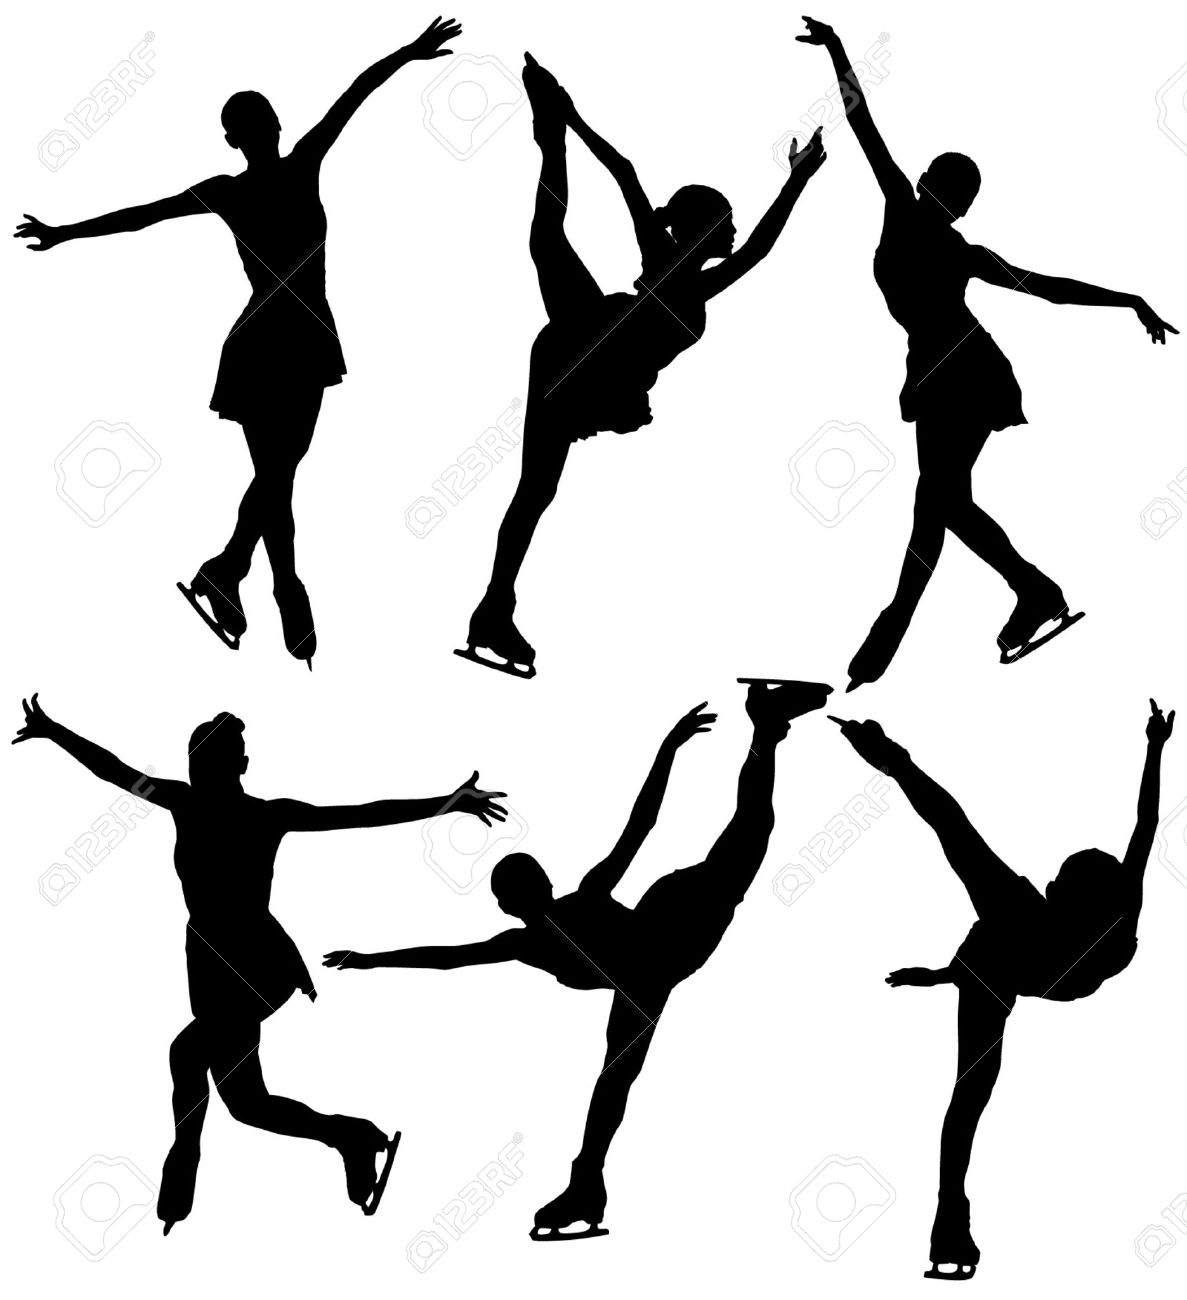 1187x1300 Figure Skating Poses Clipart